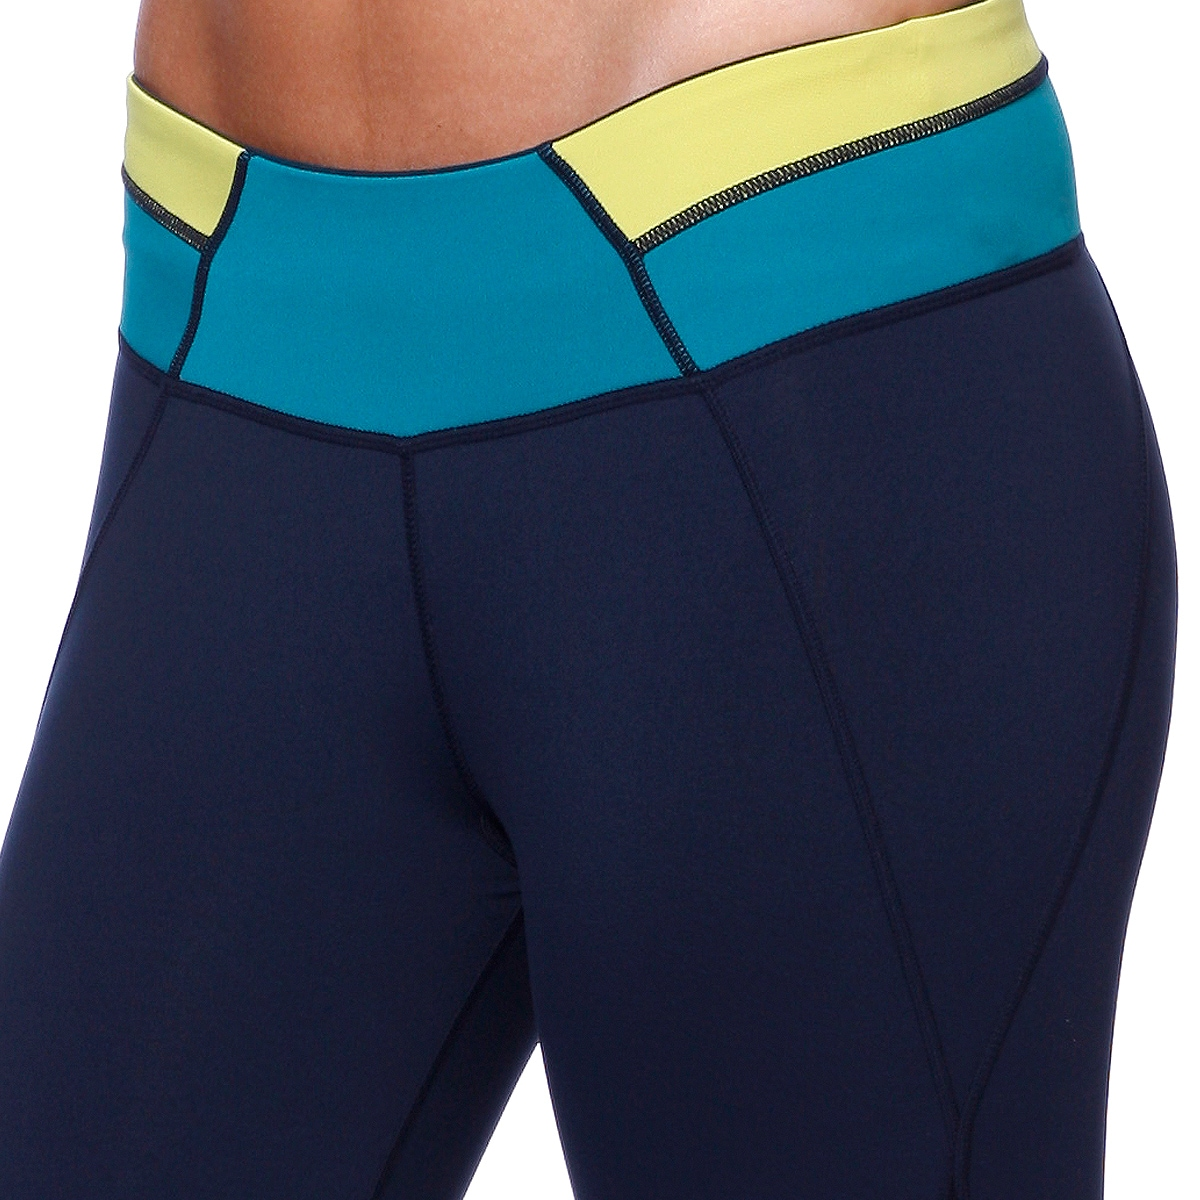 f838cf1f91 Shop Nikibiki Activewear Colorblock Contrast Yoga Pants - Free Shipping On  Orders Over $45 - Overstock - 11928086